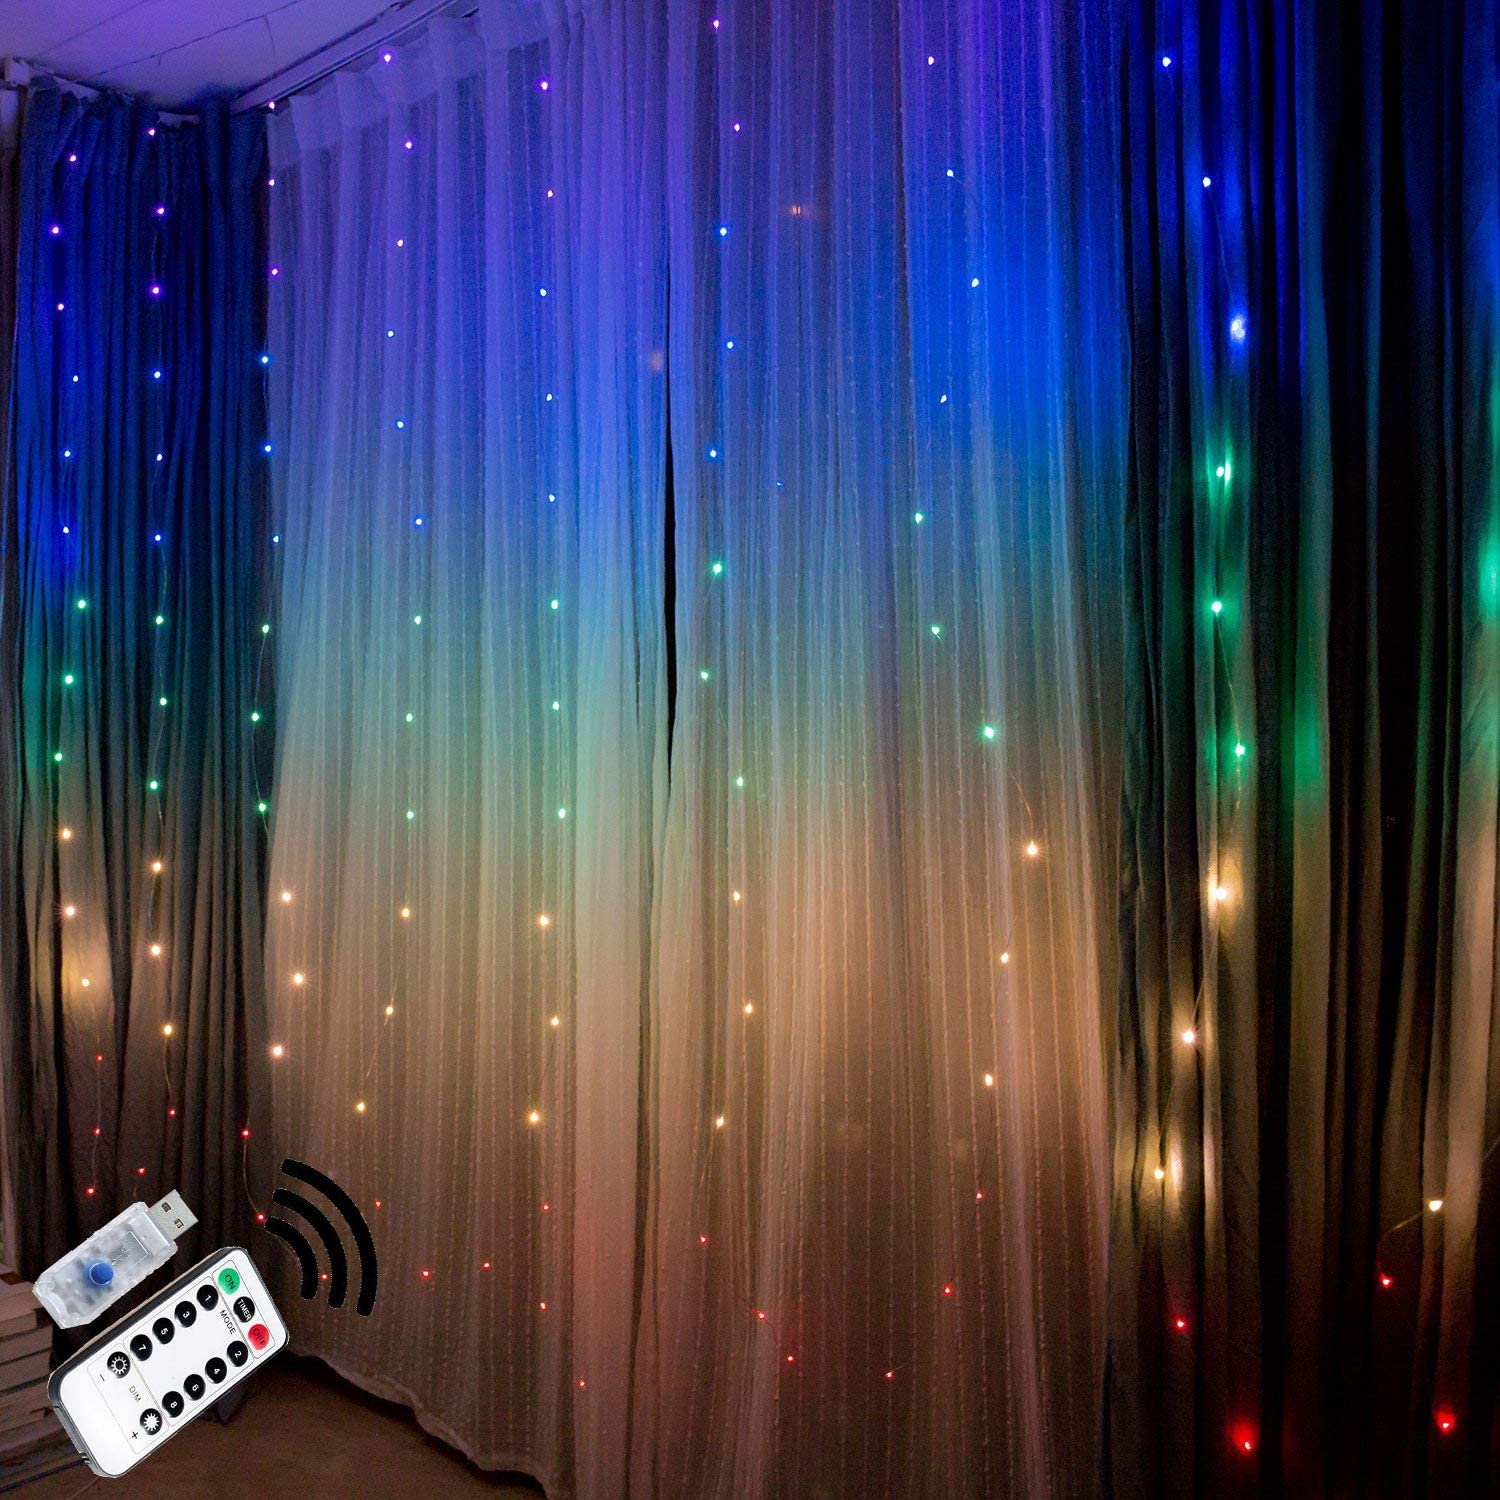 Fairy Lights Led String Lights Twinkle Color Changing Lighted Curtains Colored Indoor Window Light up Decorations for Bedroom Room Wall Decor Wedding Christmas Halloween Party Backdrop Rainbow Unicorn